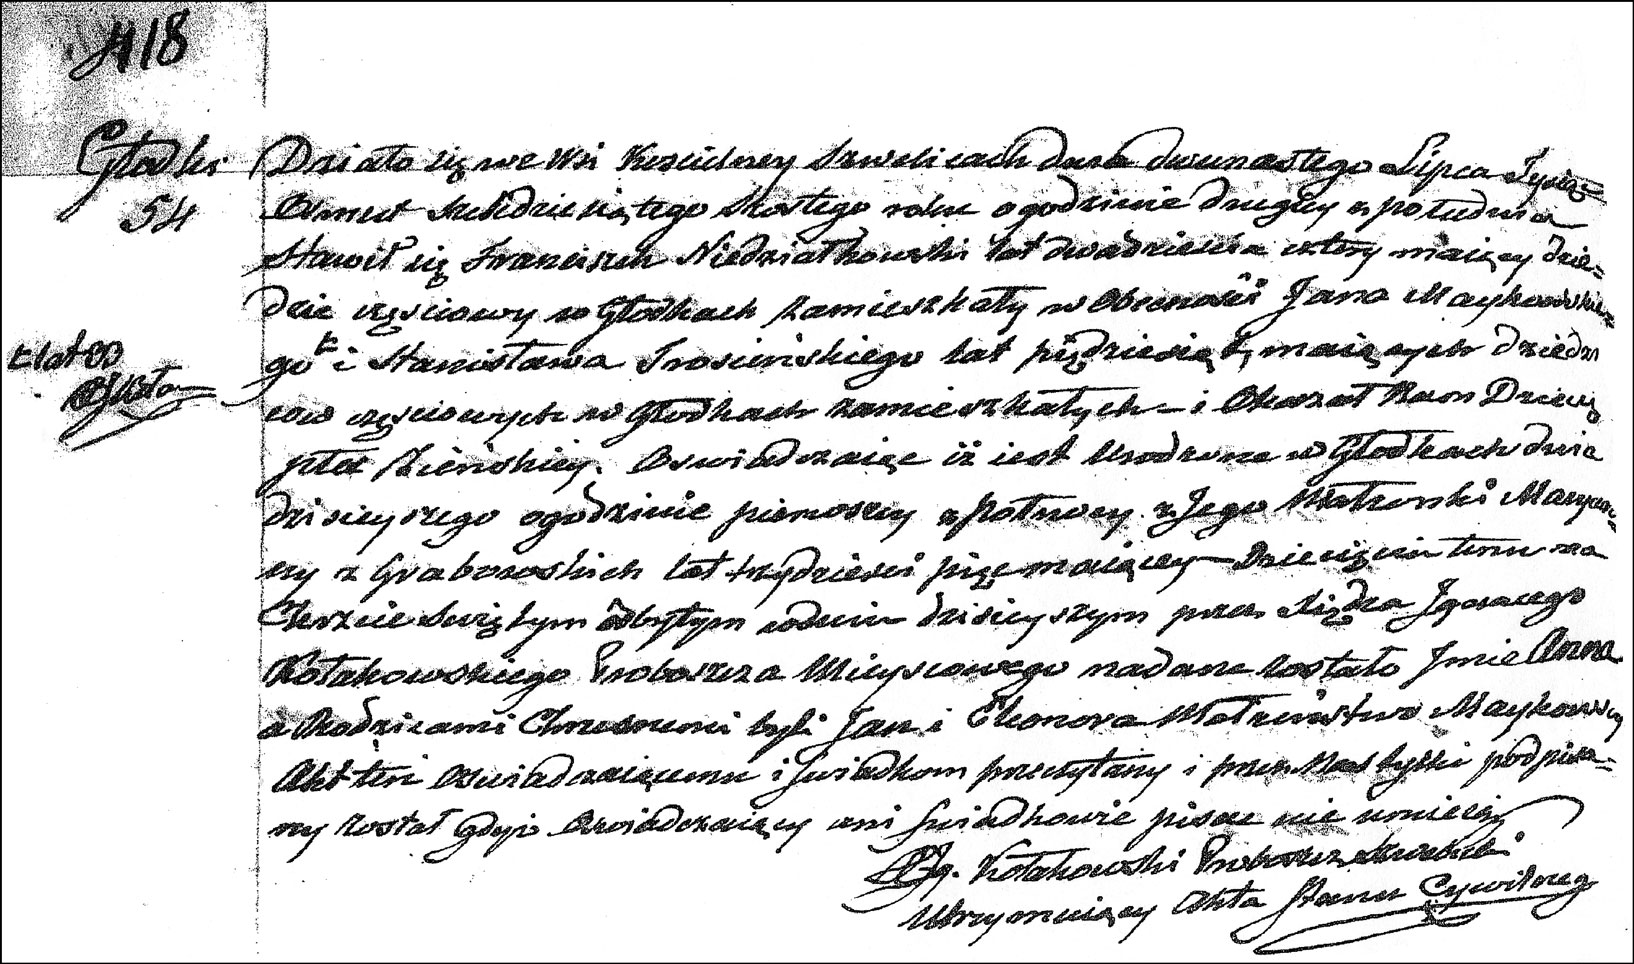 The Birth and Baptismal Record of Anna Niedzialkowska - 1866